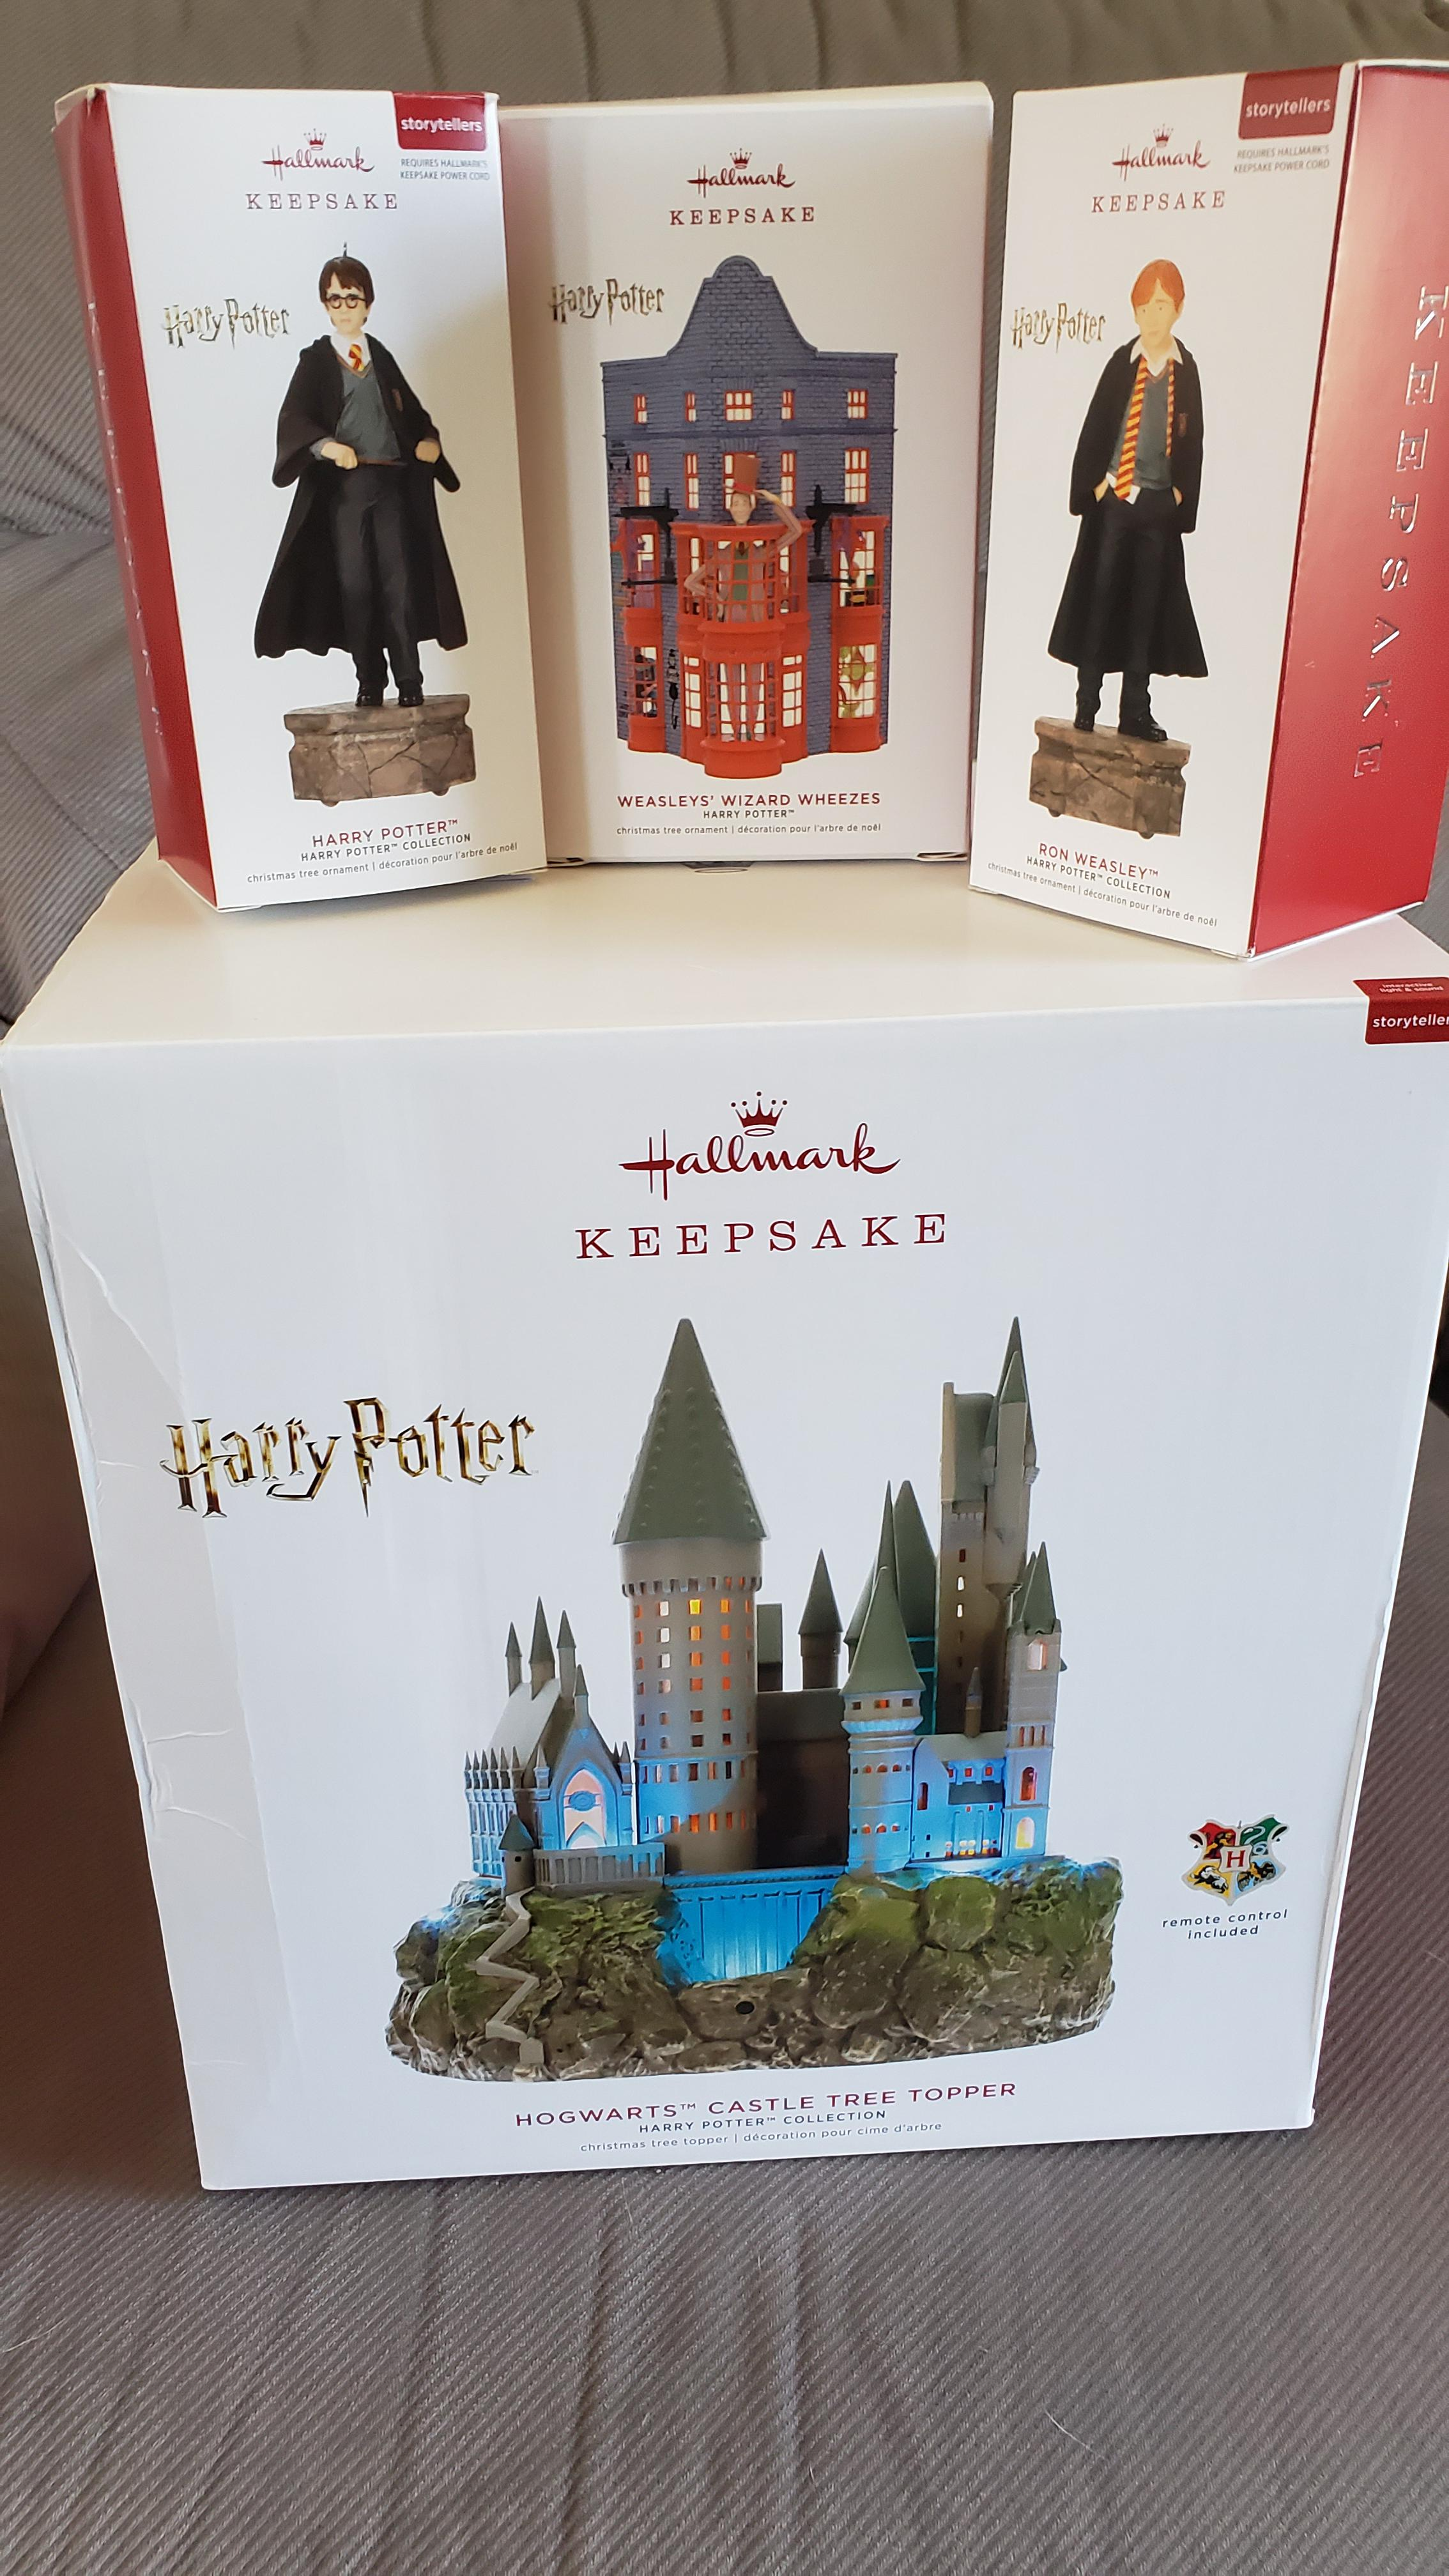 Location Décoration Harry Potter Just Take All My Money Hallmark Will Be Getting The